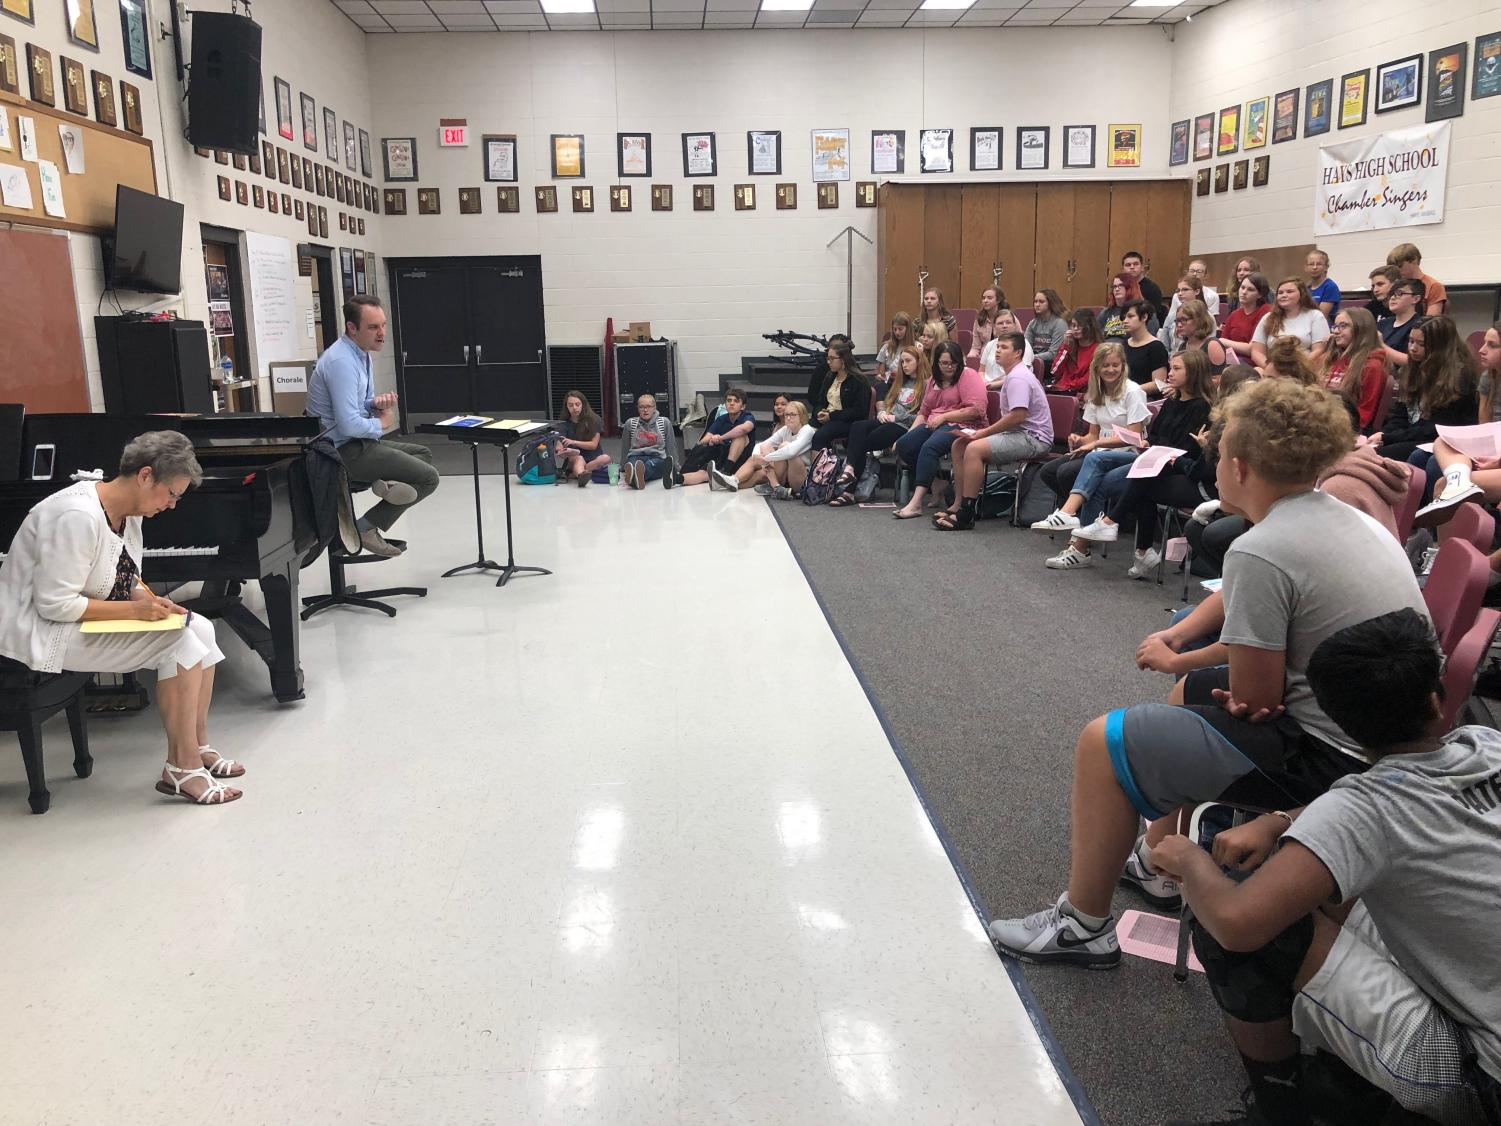 Director Alex Underwood breaks down the logistics for this year's Musical,